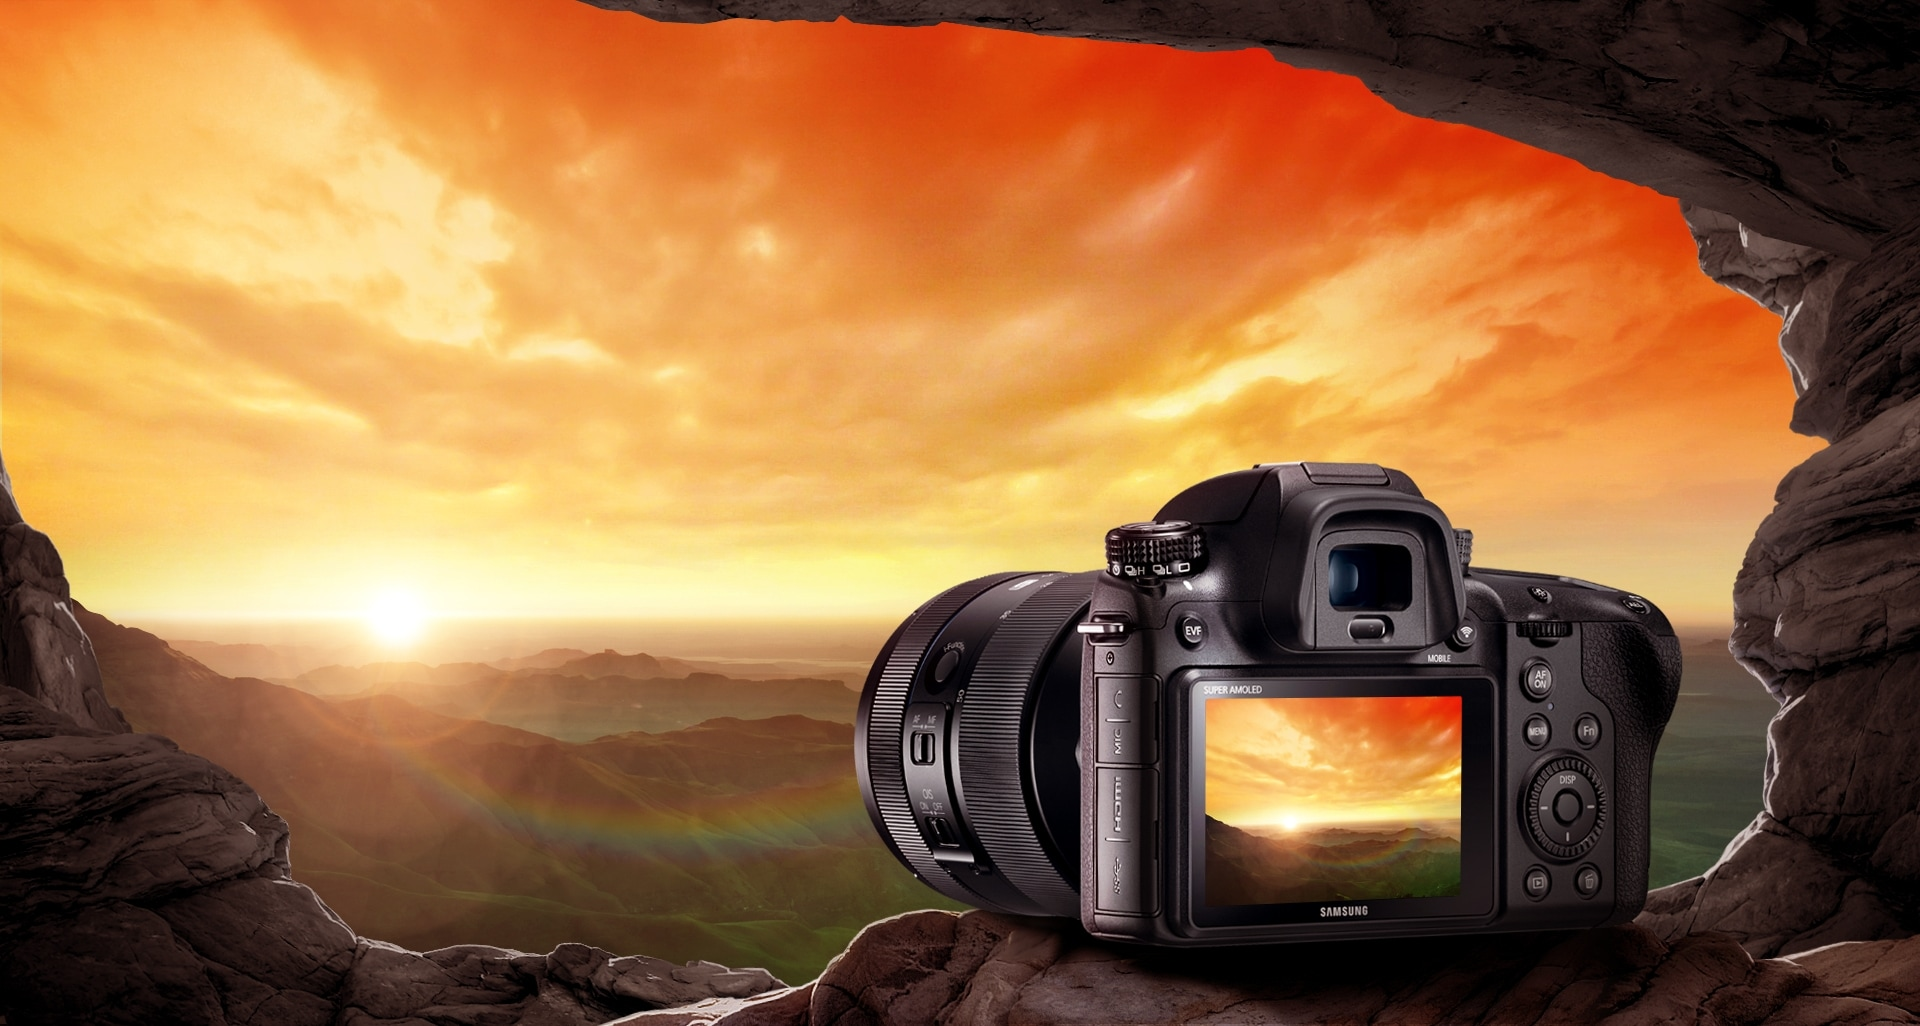 Beautiful landscape scenery of a sunset is being shown through the NX1's AMOLED Tilt Display.